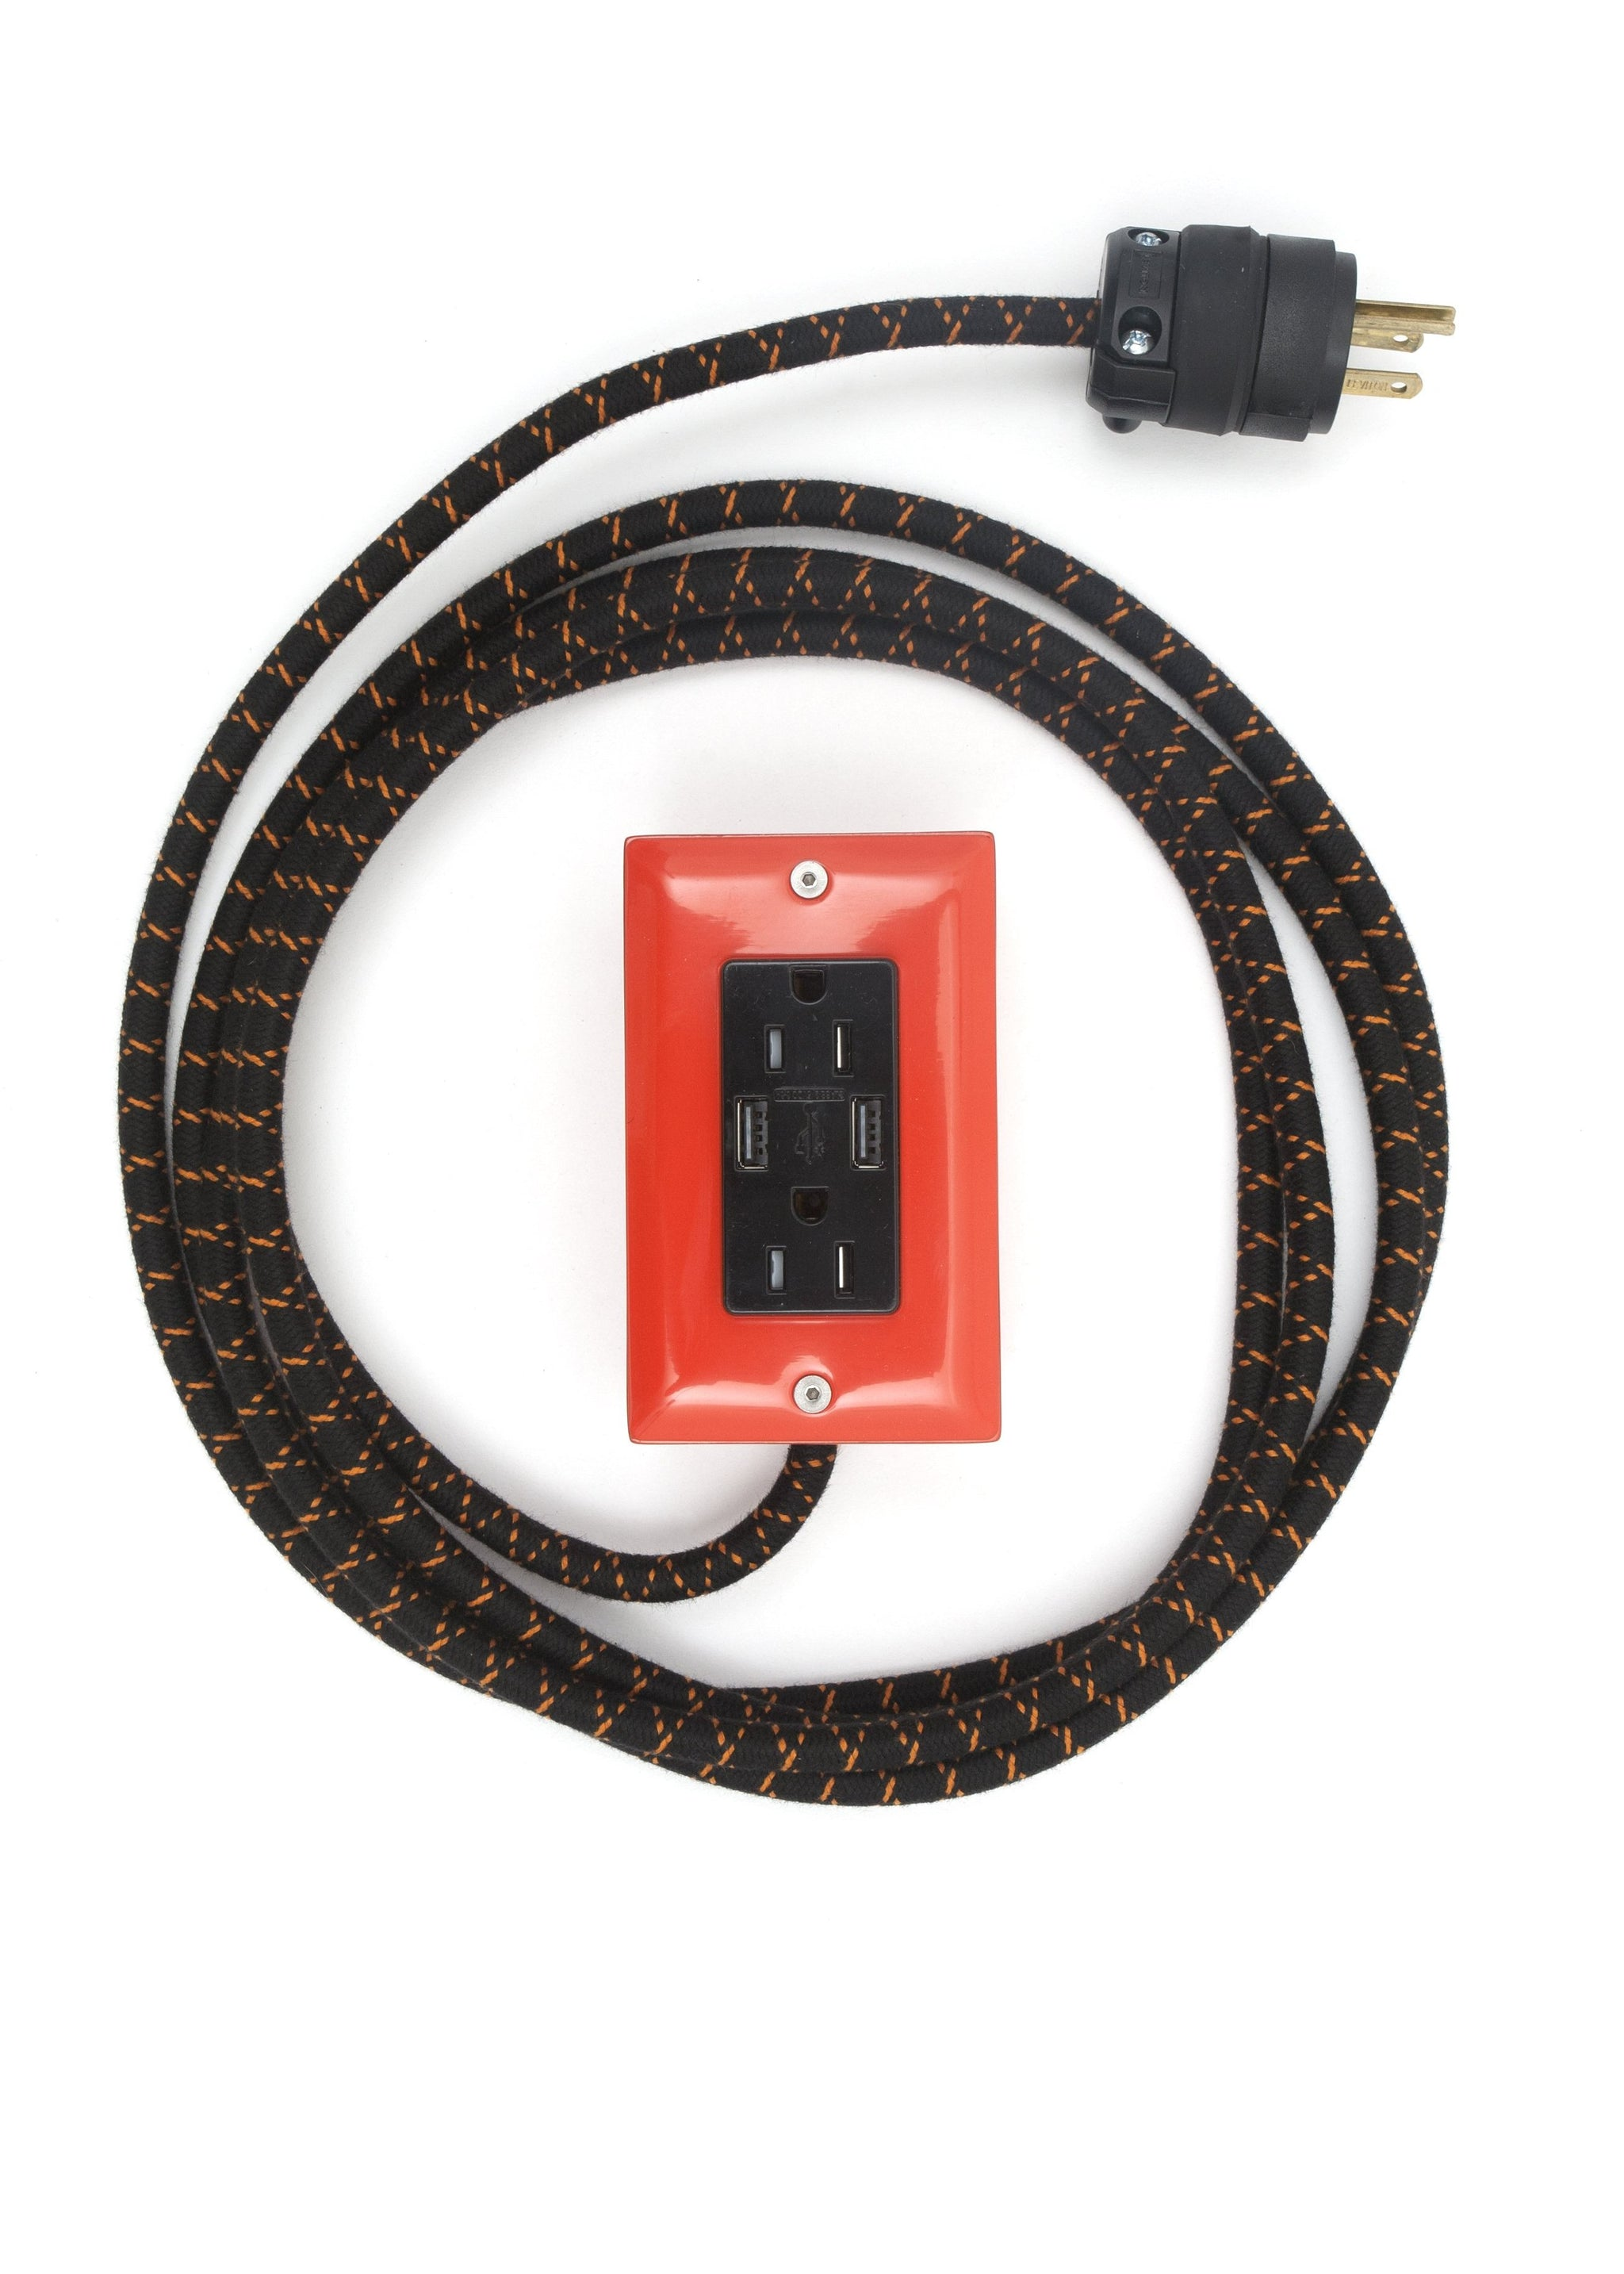 The First Smart Chip Extension Cord - 12' Extō Dual-USB, Dual-Outlet - Pumpkin Orange